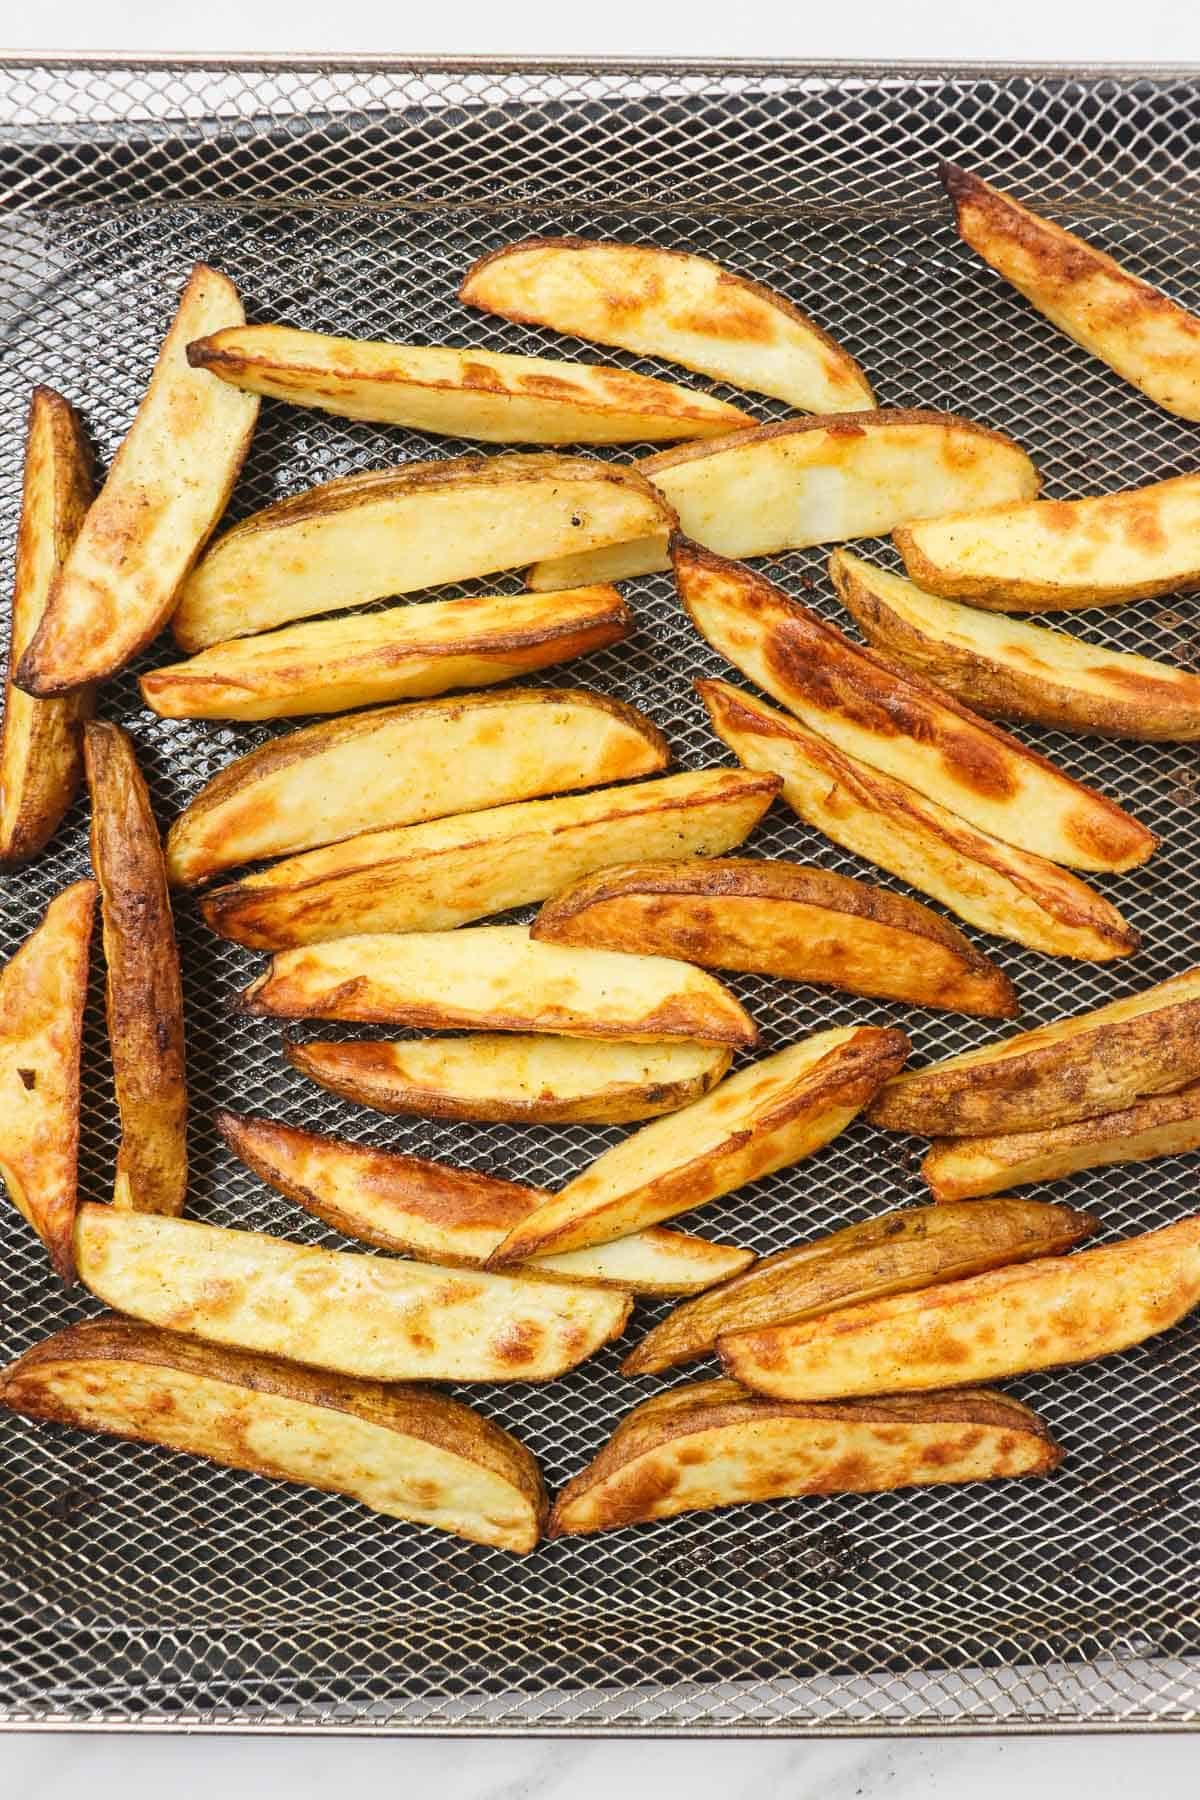 cooked potato wedges in air fryer basket